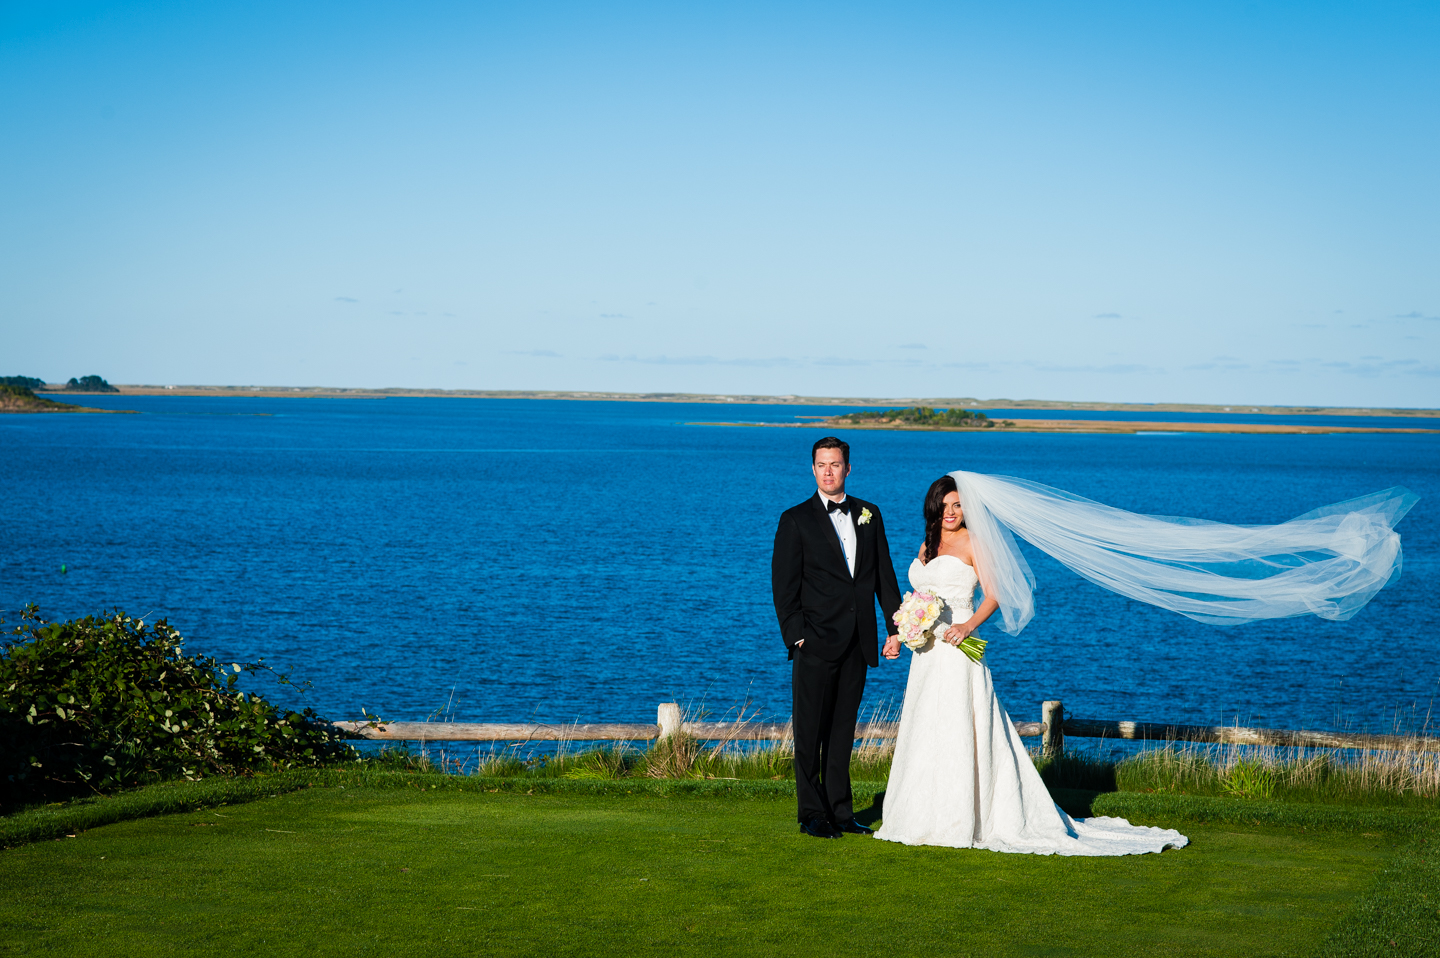 bride and groom stand at the edge of the ocean